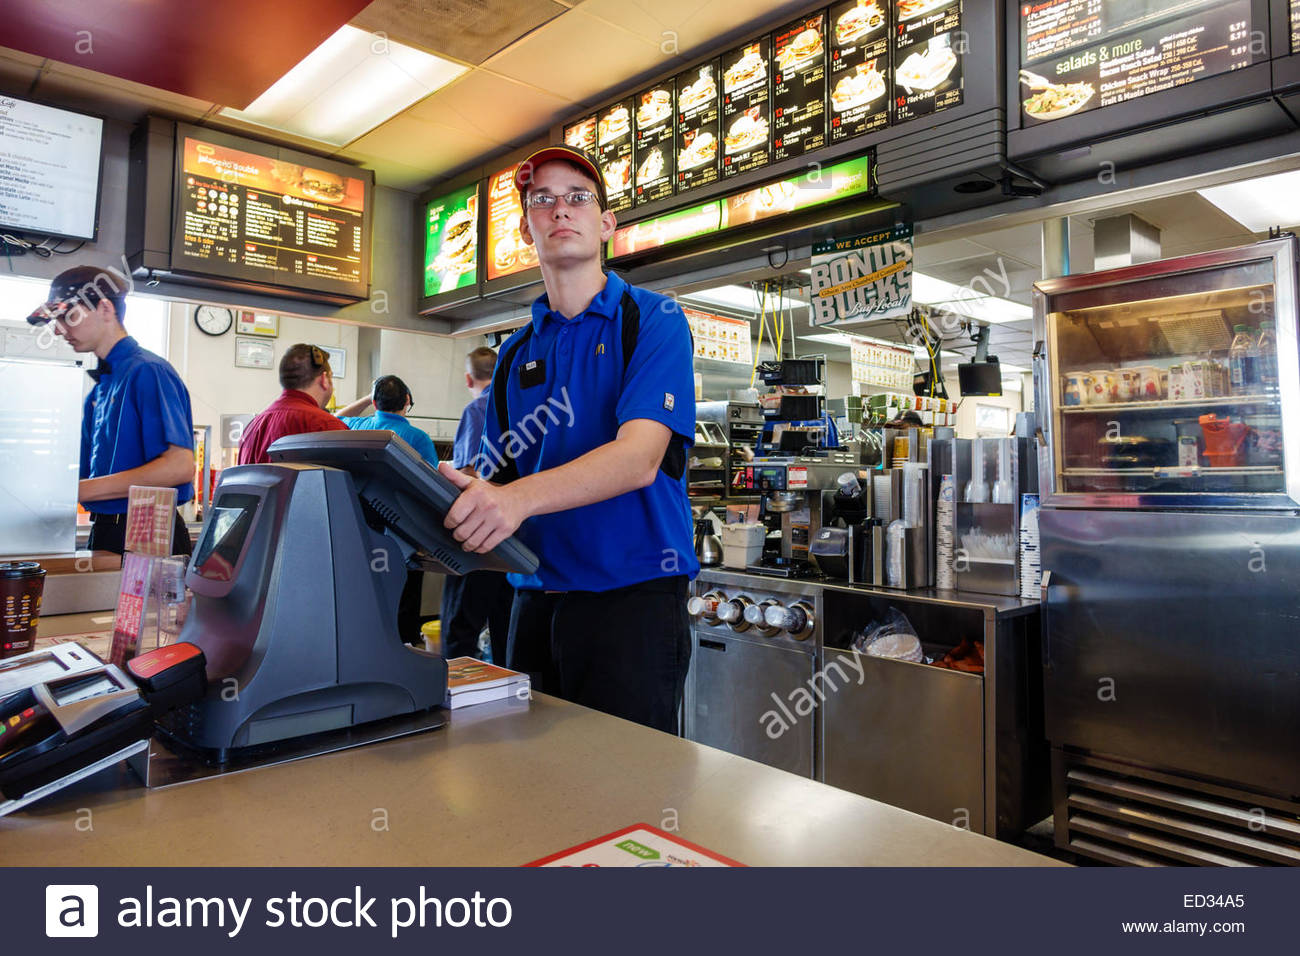 Illinois Gibson City McDonald's fast food restaurant counter man employee working job uniform order taker cashier - Stock Image